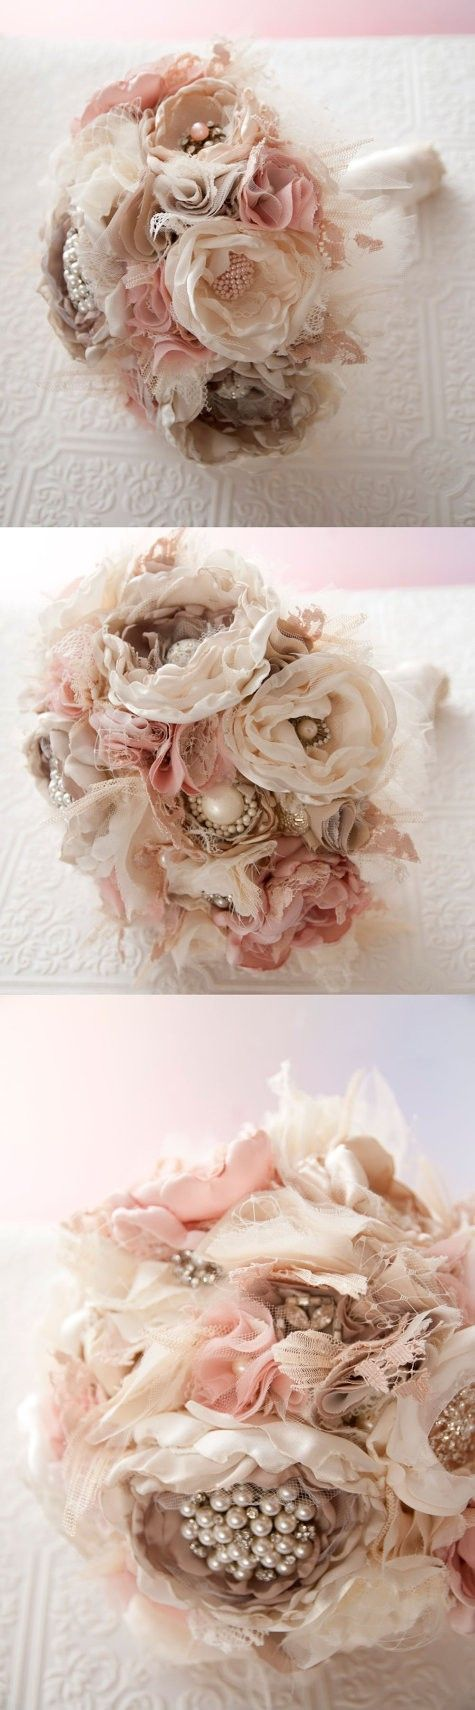 fabric wedding bouquets are a quirky alternative to traditional fresh wedding flowers